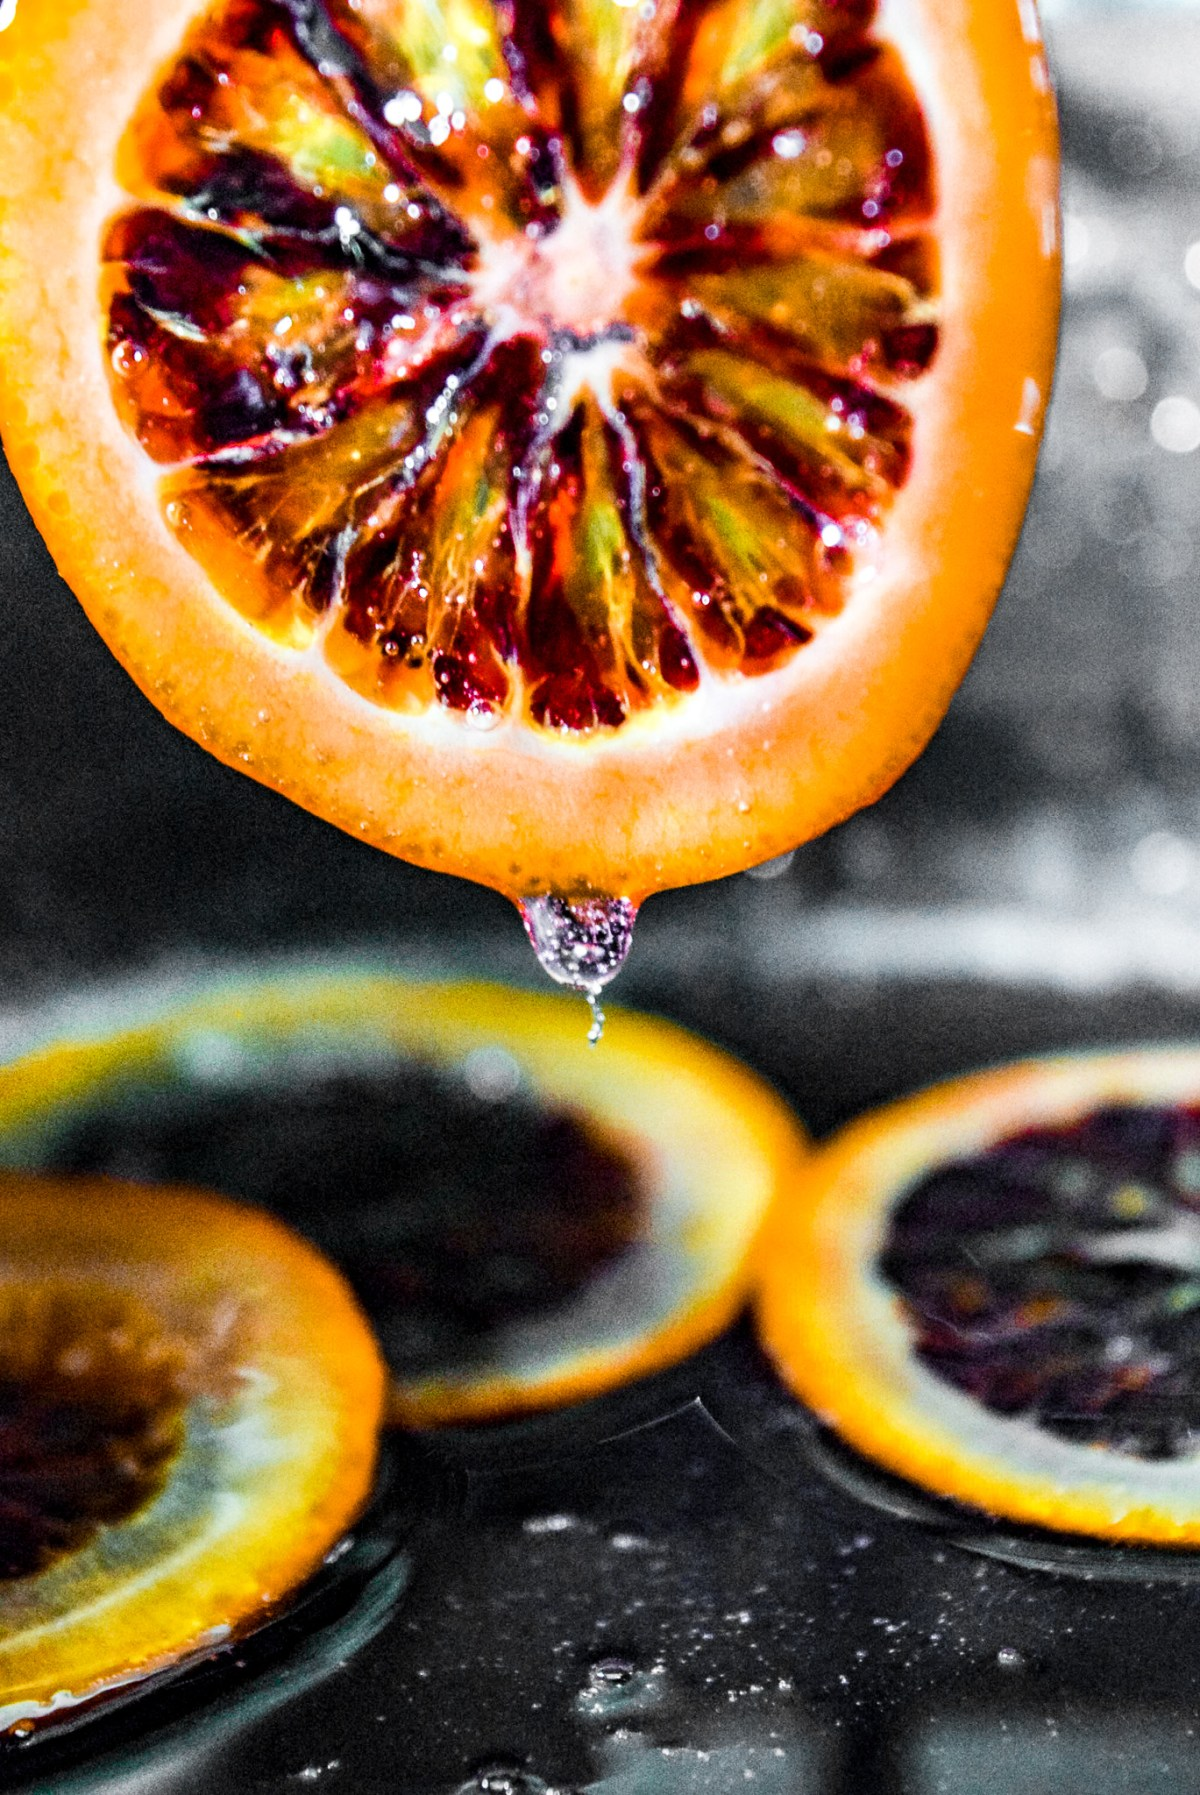 Removing blood orange slice from sugar water after candying